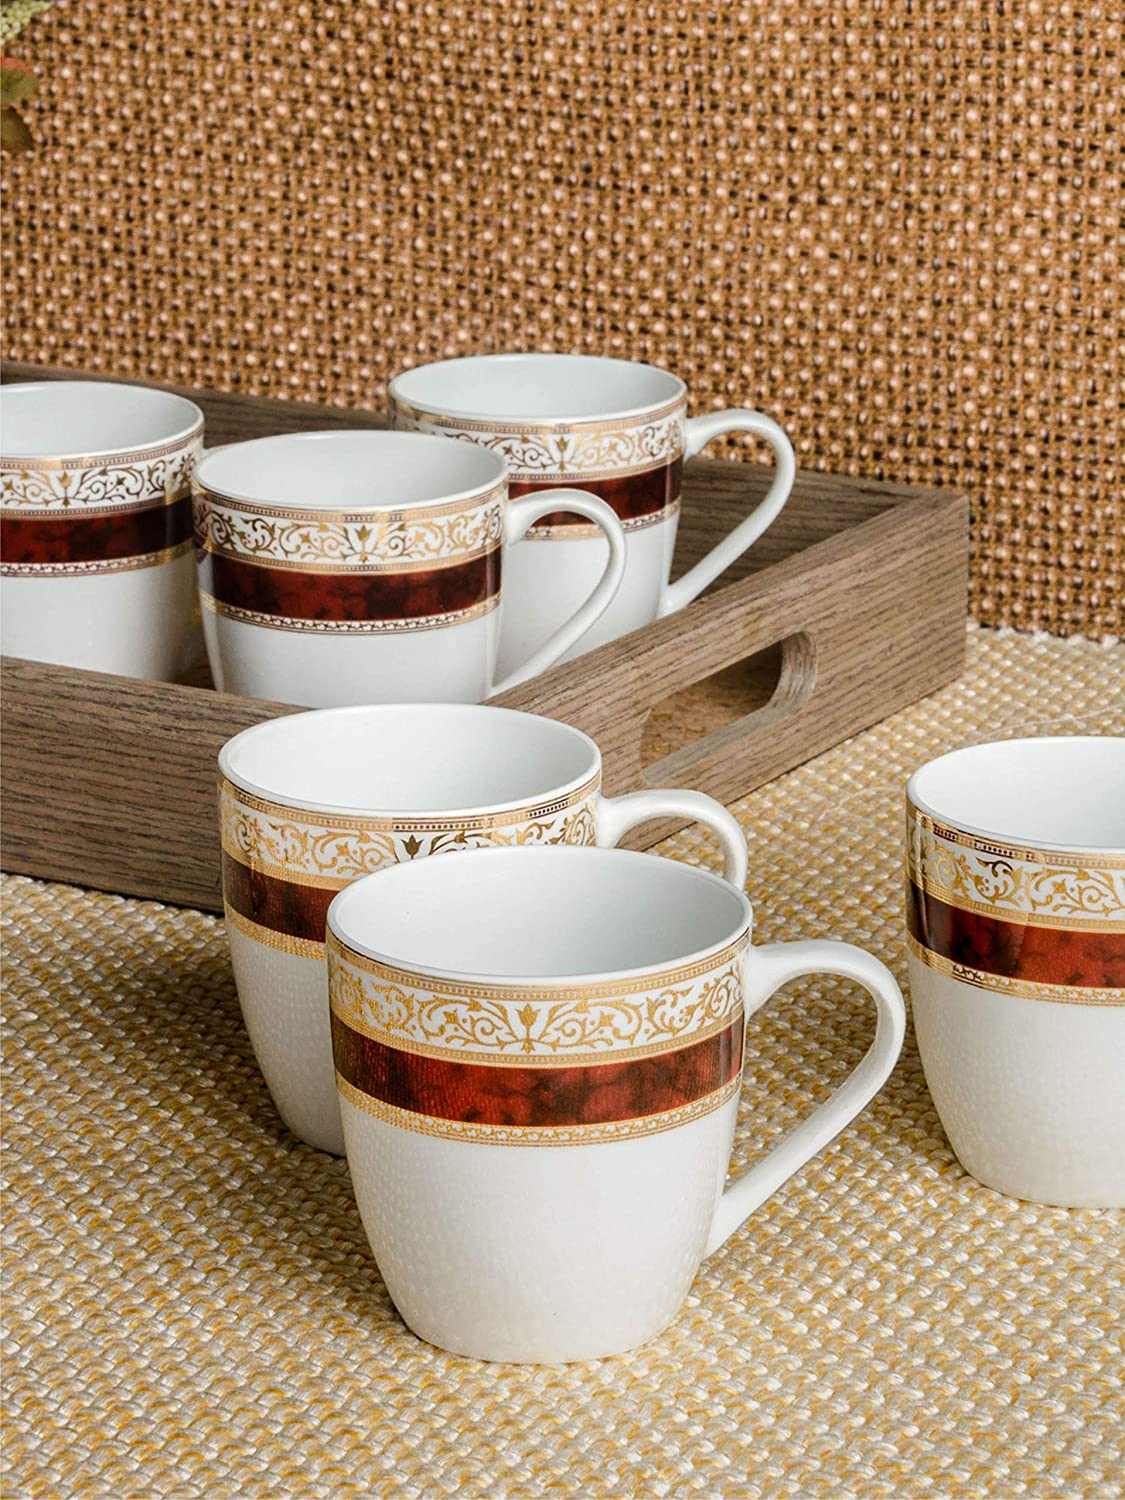 Buy Bone China Tea Cups Coffee Mugs With Real Gold Design Print Medium Size Set Of 6 Mugs Made In India Online At Low Prices In India Amazon In